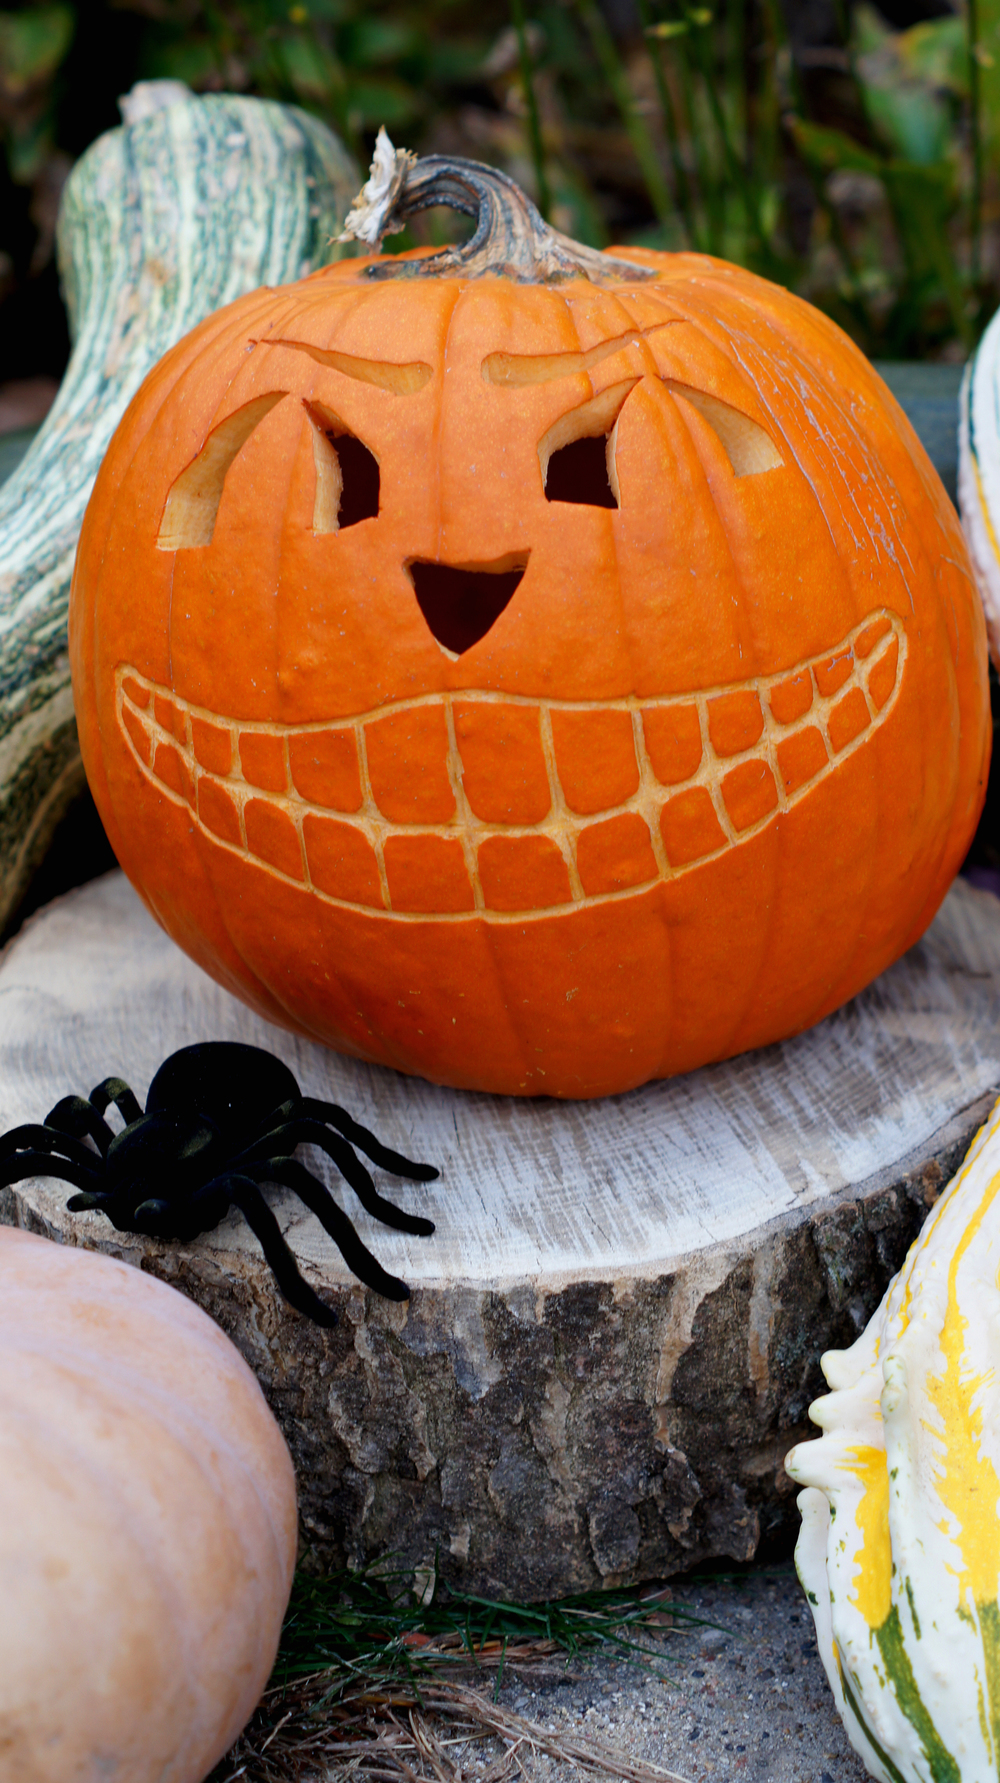 Carved Pumpkin 2.jpg